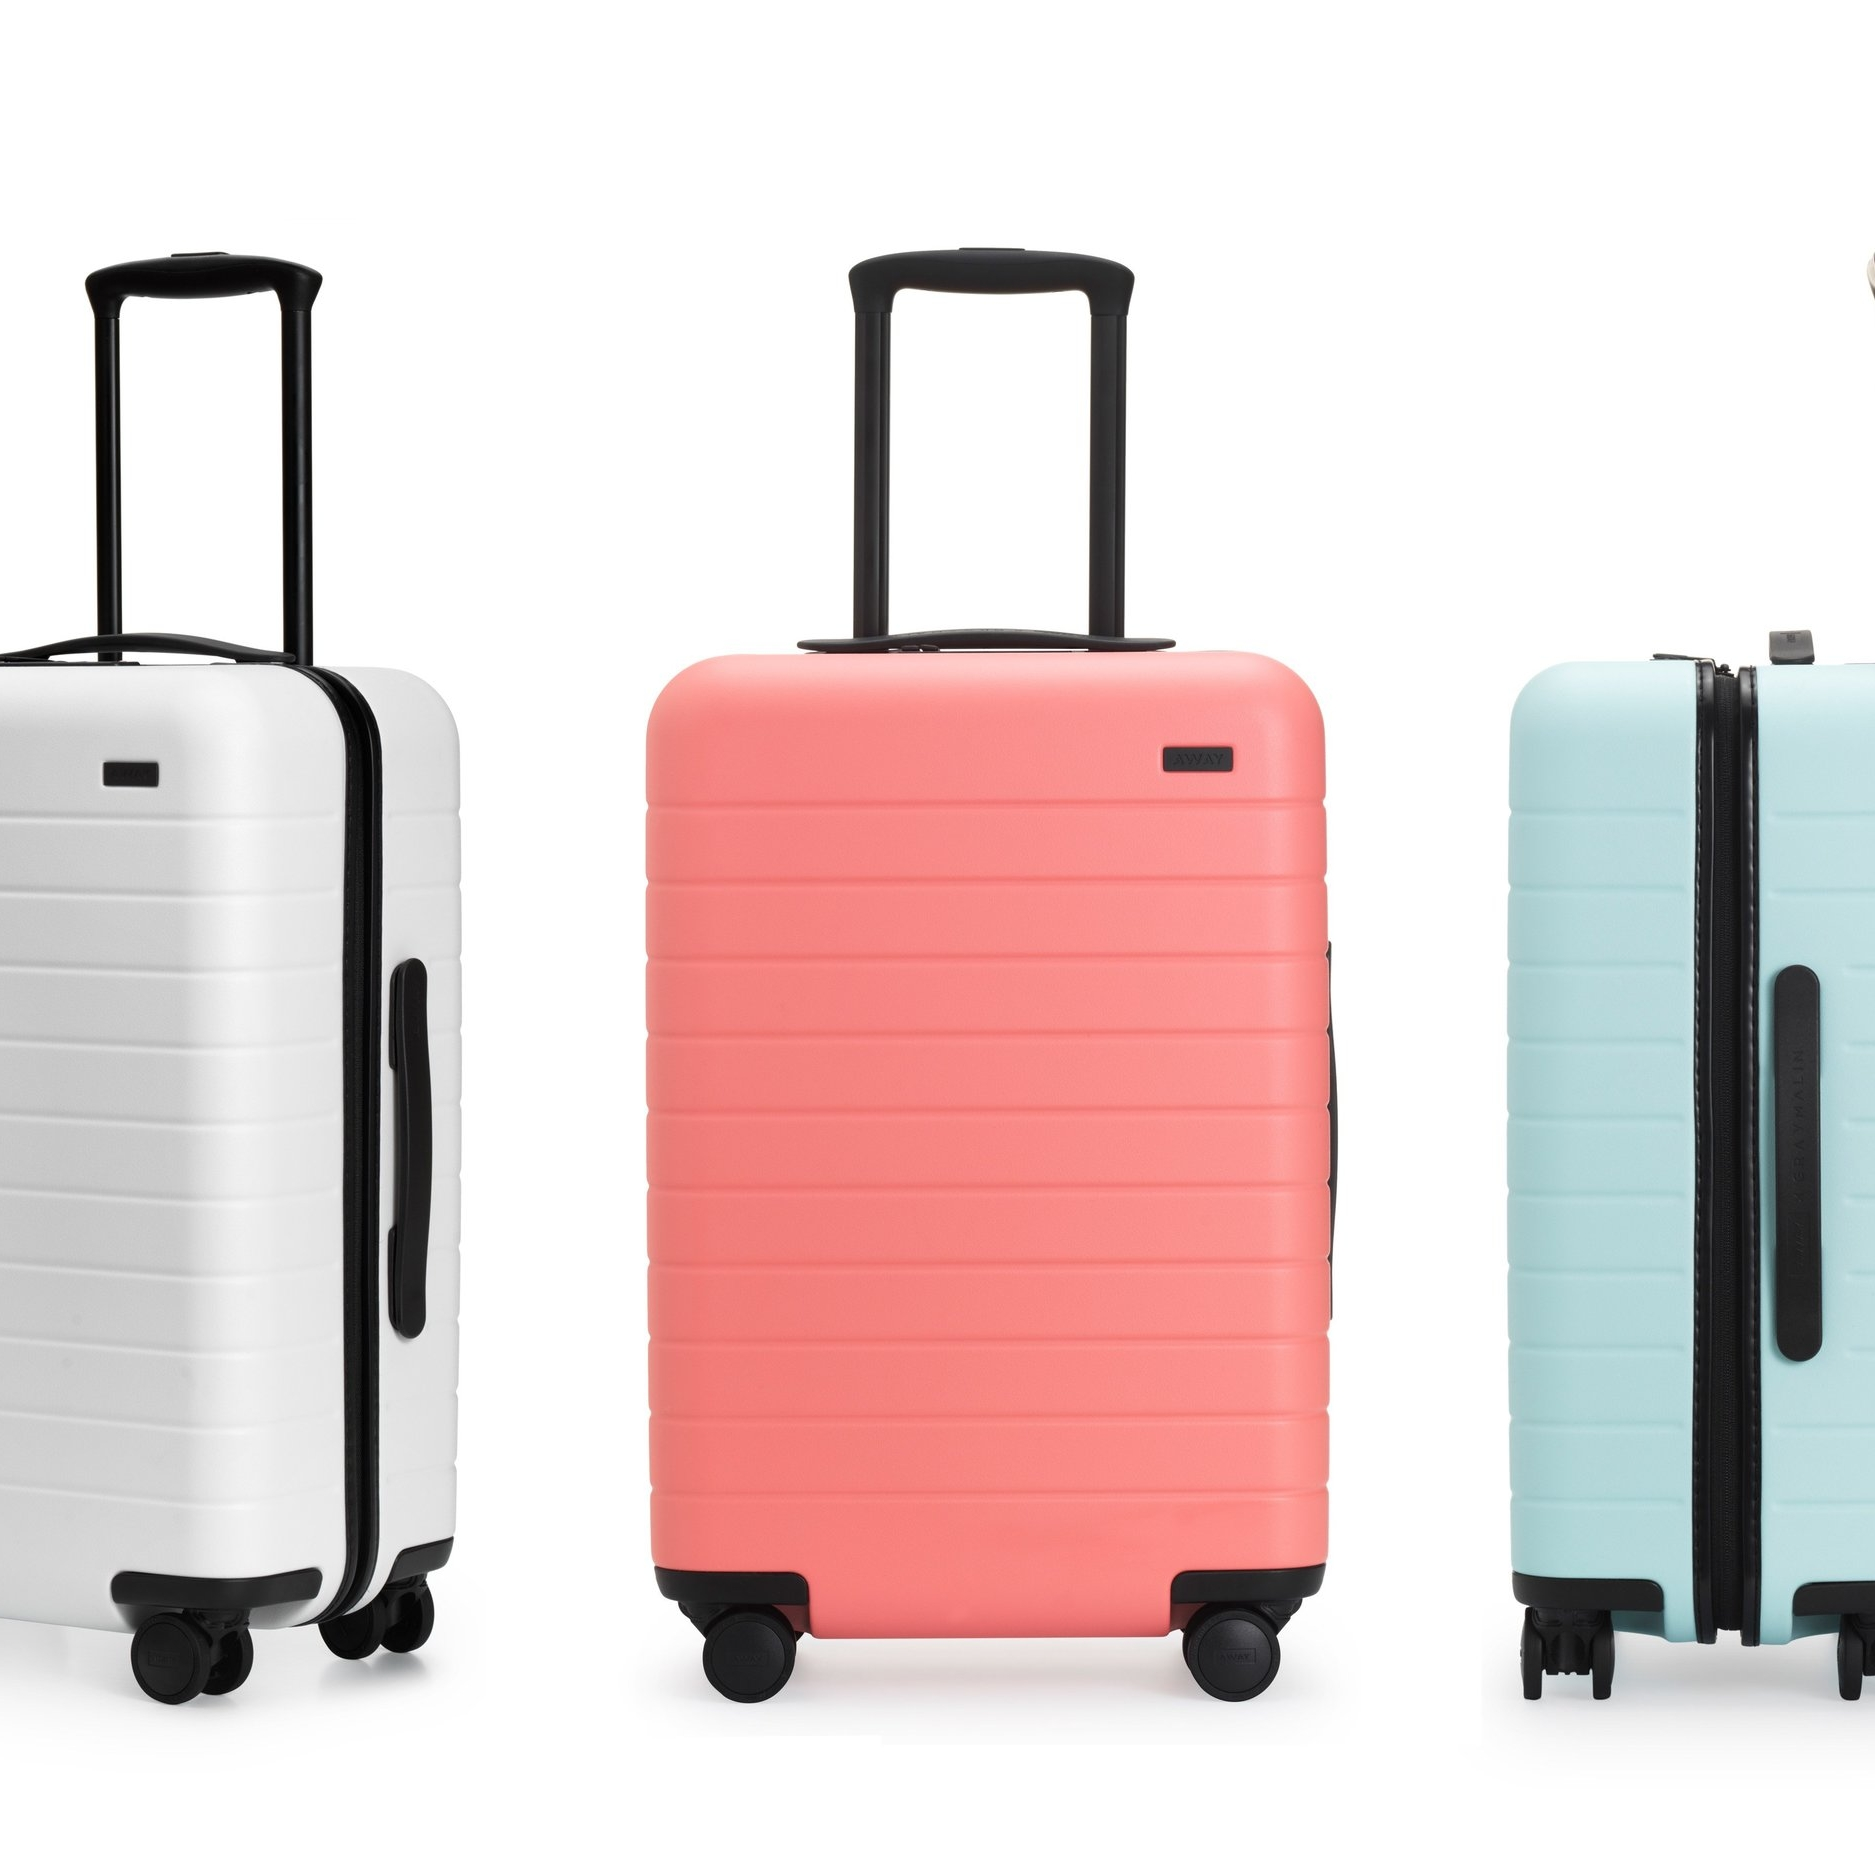 Away Luggage Rolling Bag - Everyone needs a great piece of luggage.